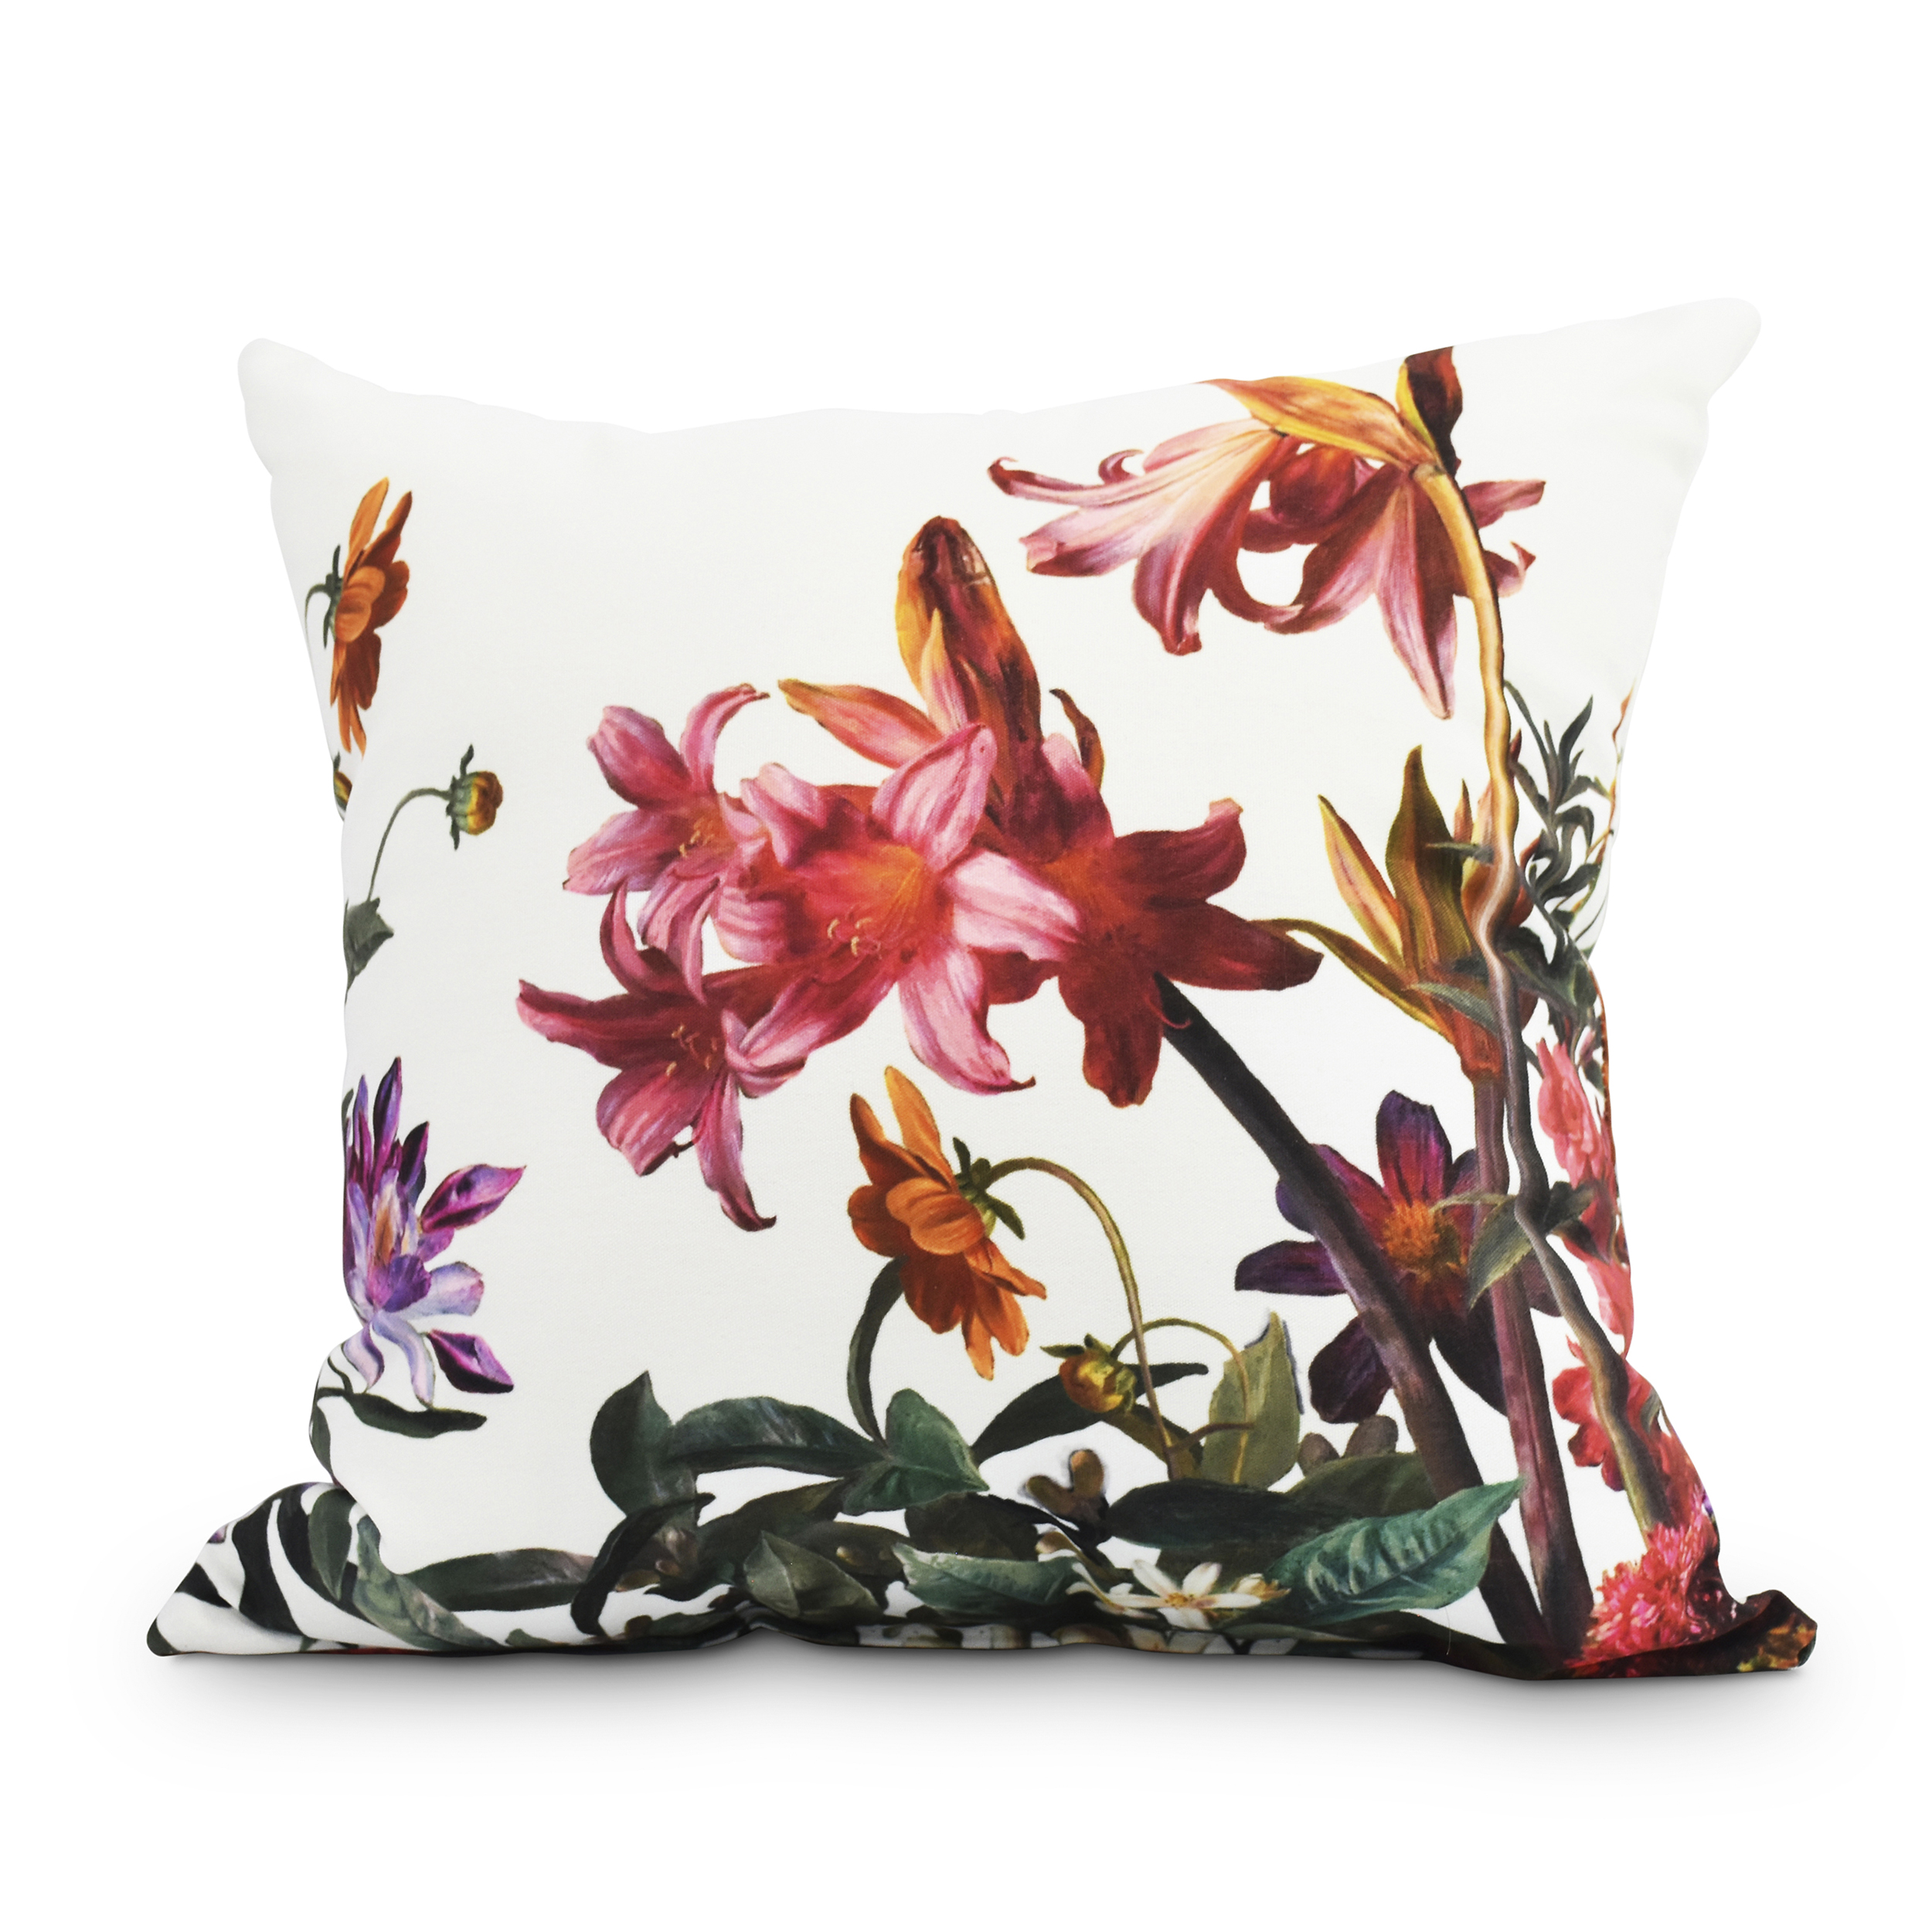 Color Me Floral 16 Inch White Floral Print Decorative Outdoor Throw Pillow